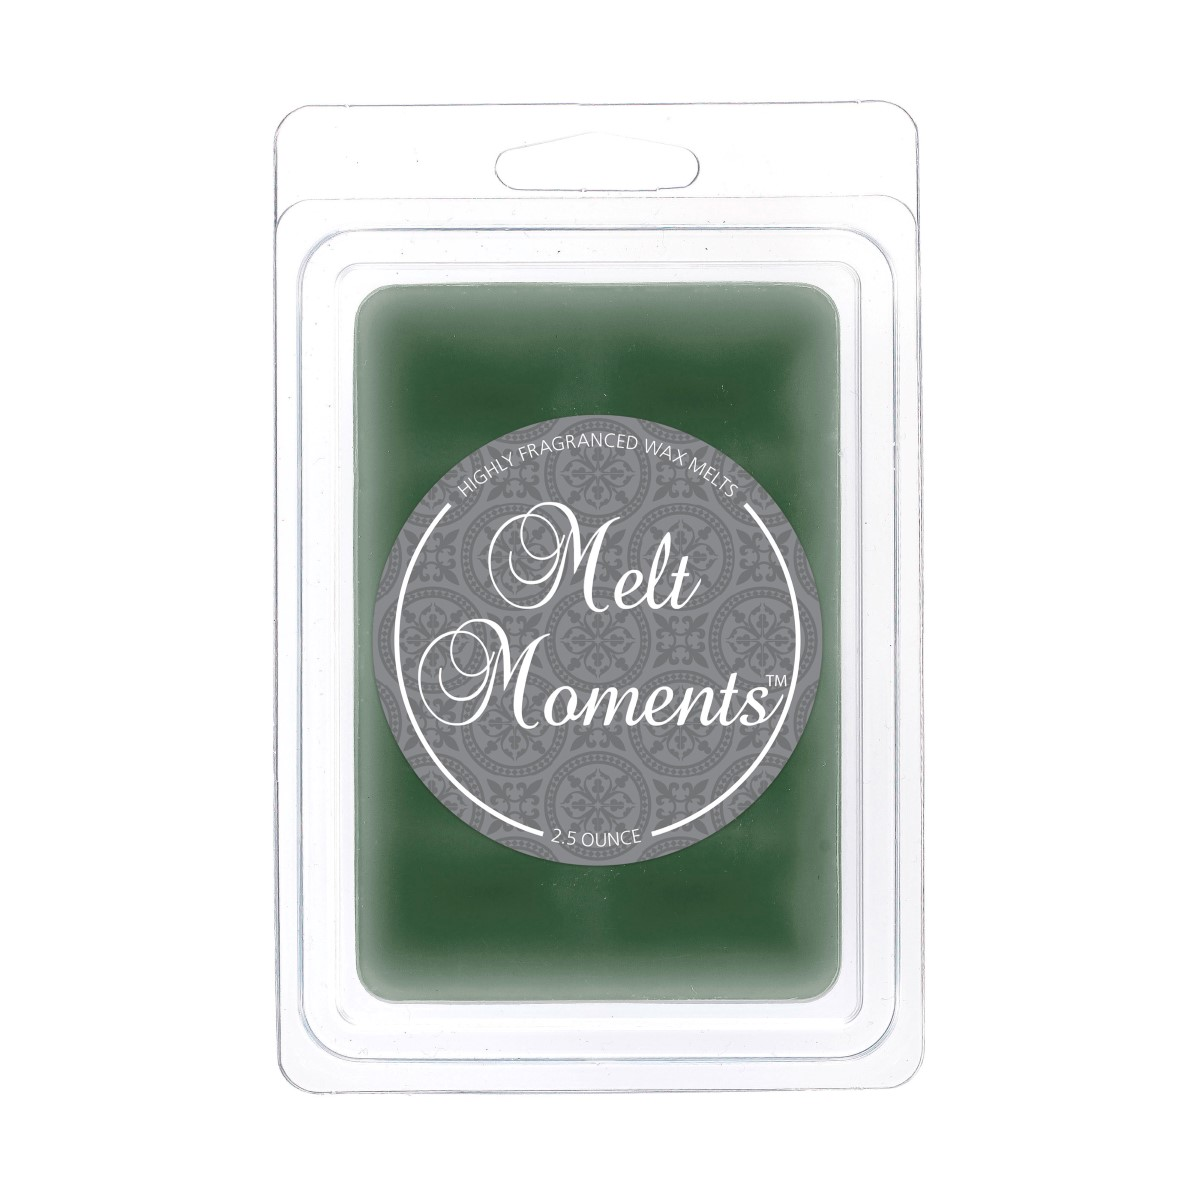 Woodsy Evergreen Melts--New lower price